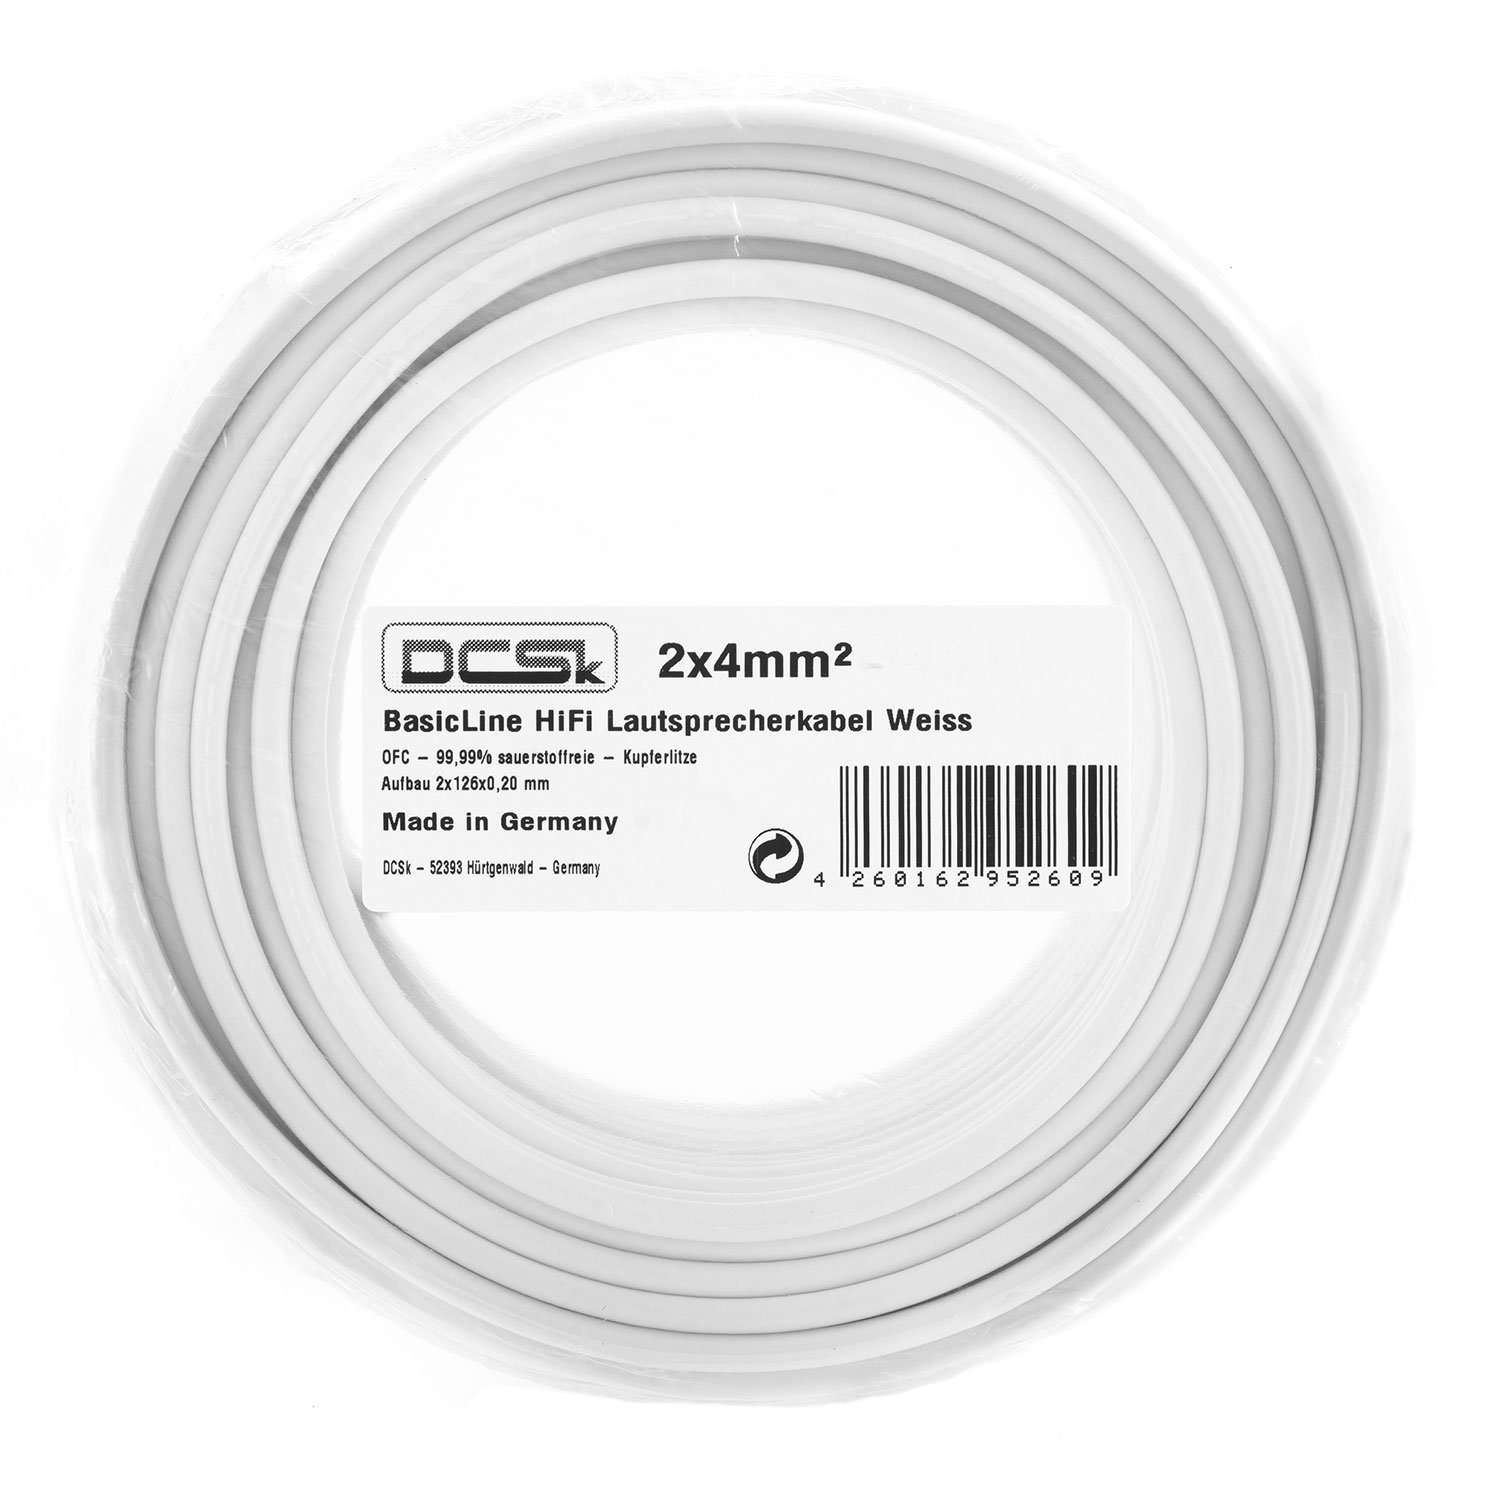 DCSk 10 m - 2 x 4 mm² white loudspeaker cable | OFC: Amazon.co.uk ...